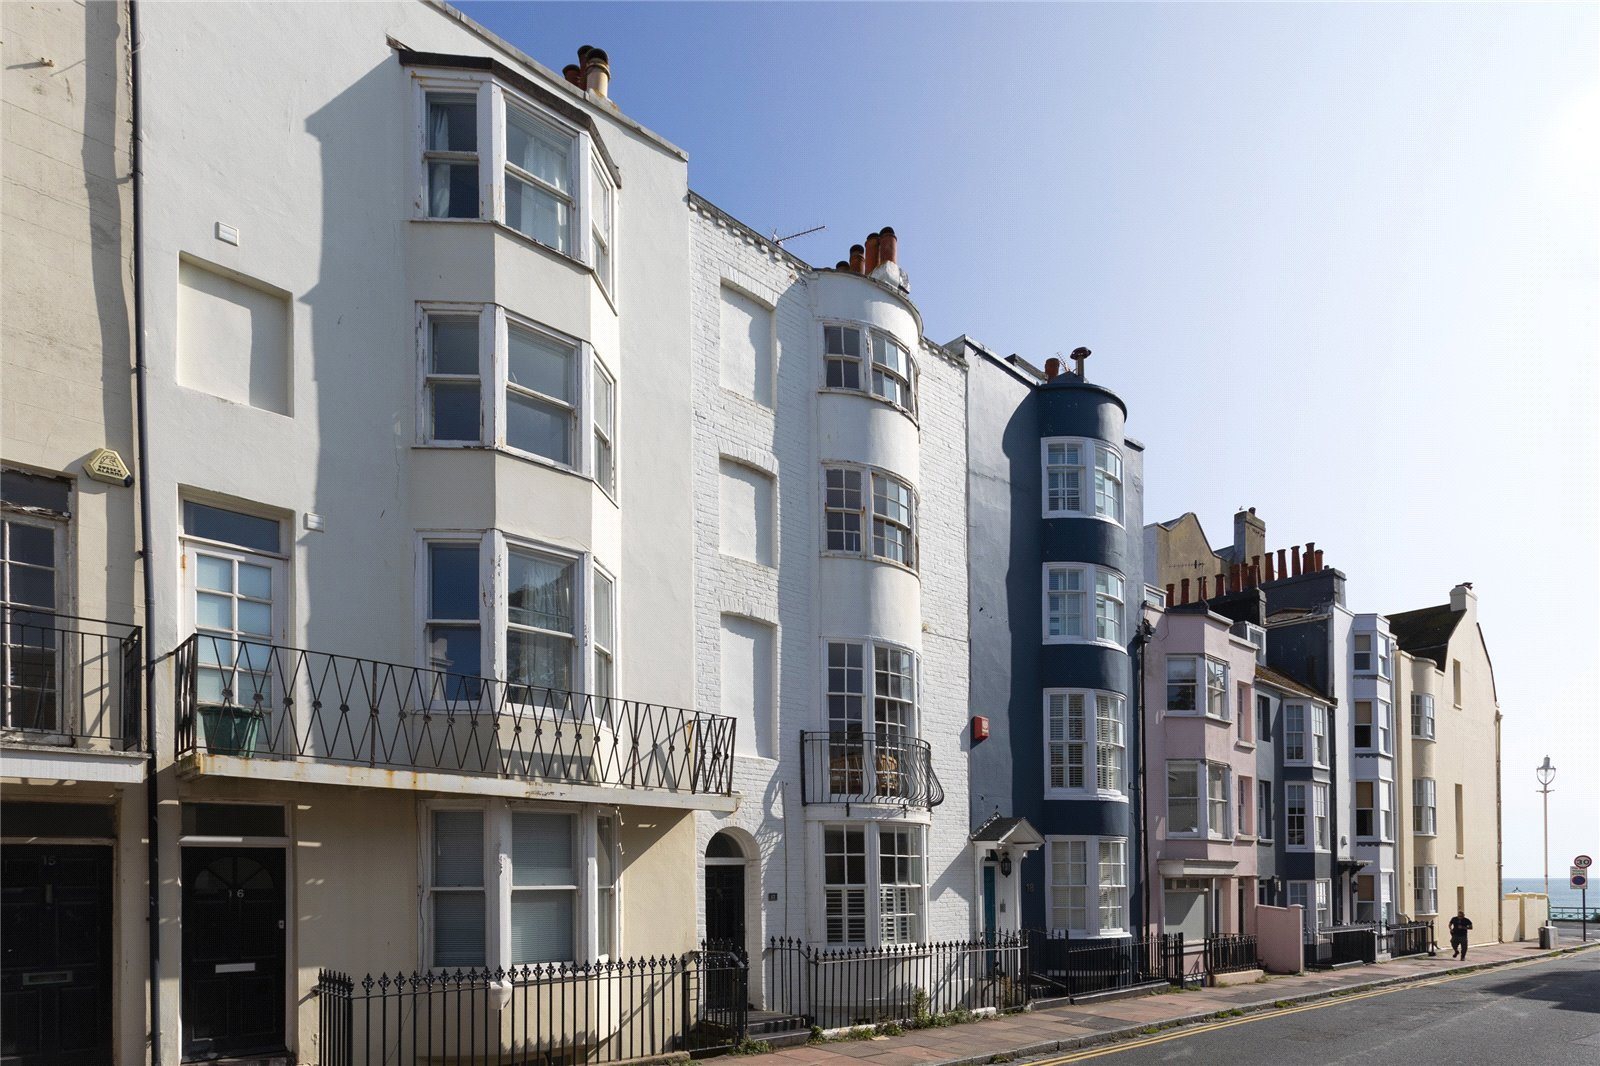 brighton east sussex row of seaside terraced houses